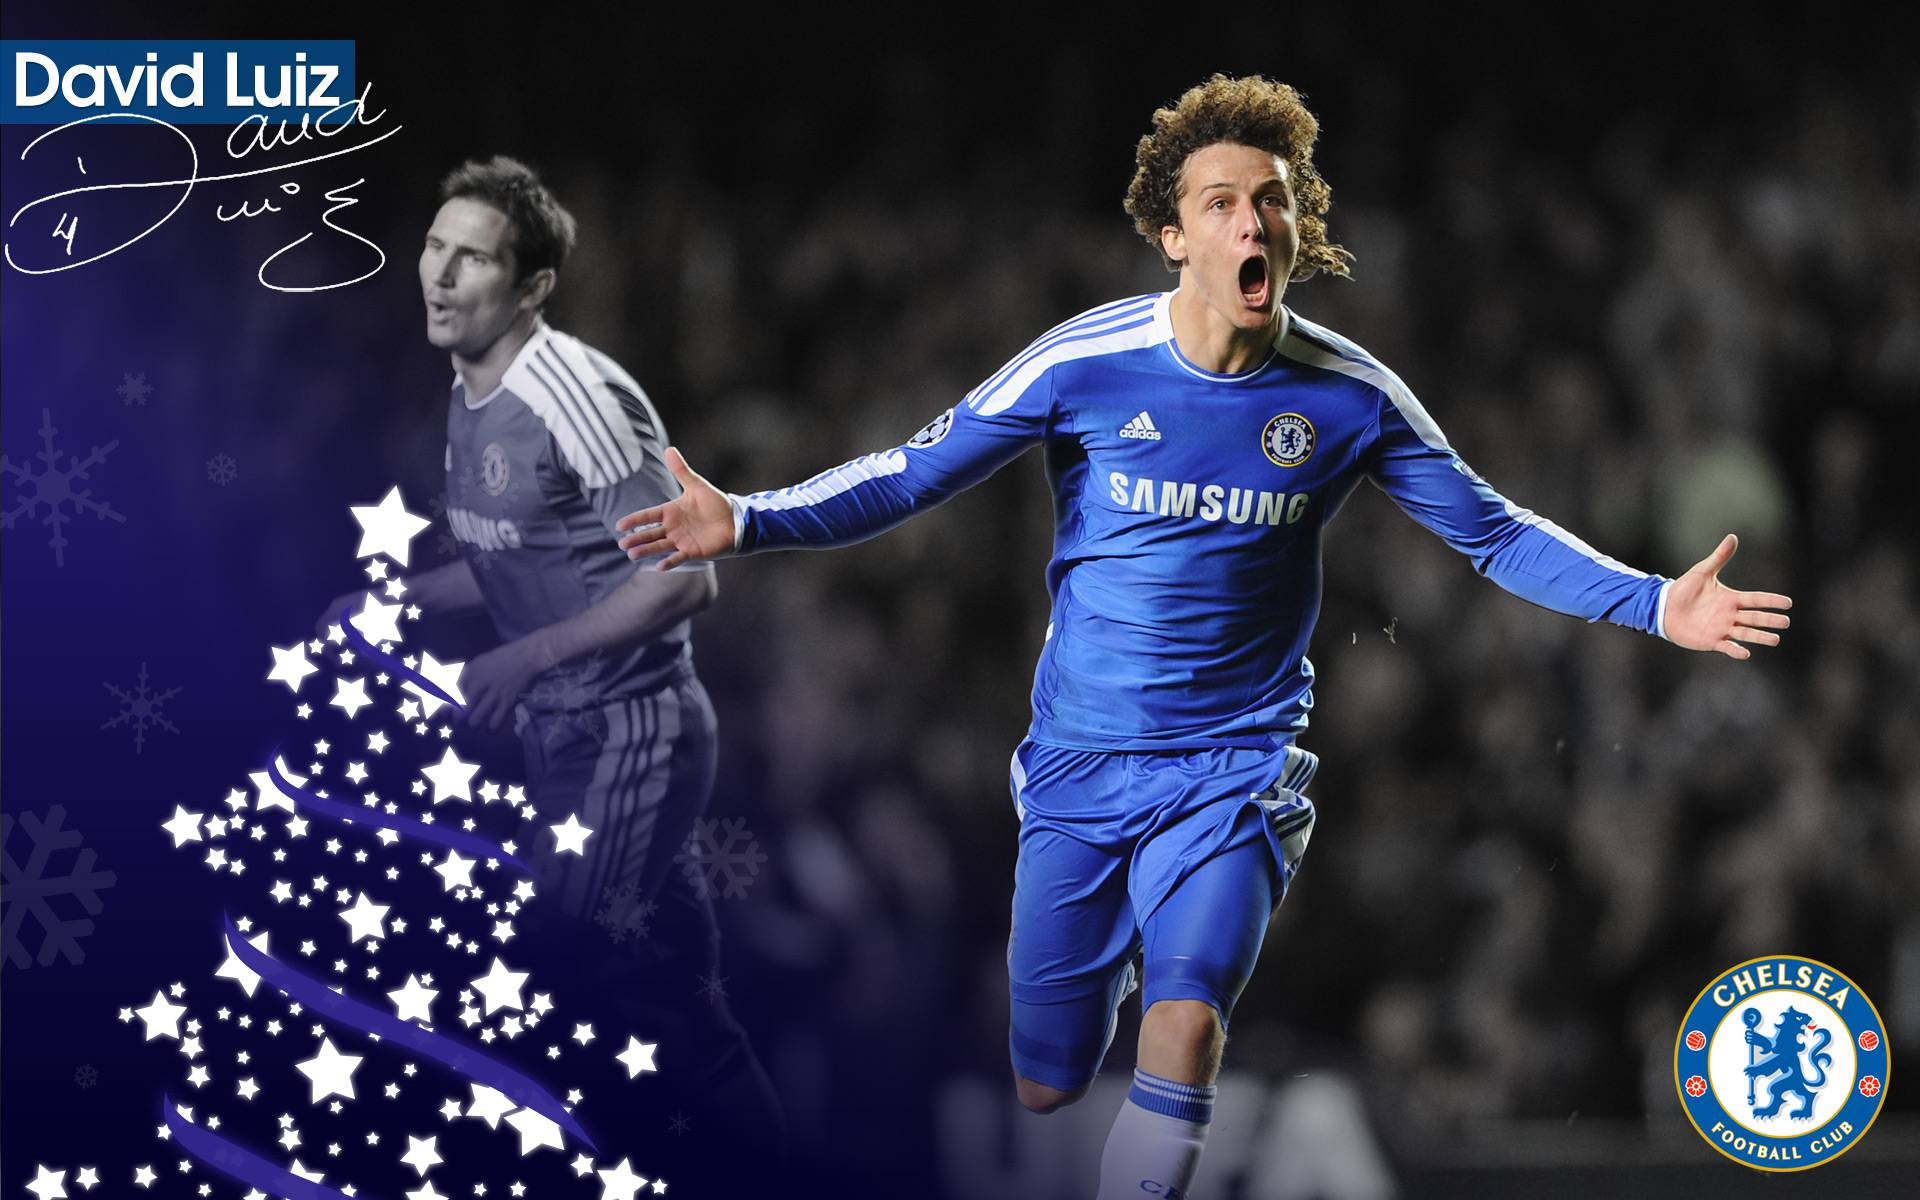 David Luiz Wallpaper 10   1920 X 1200 stmednet 1920x1200